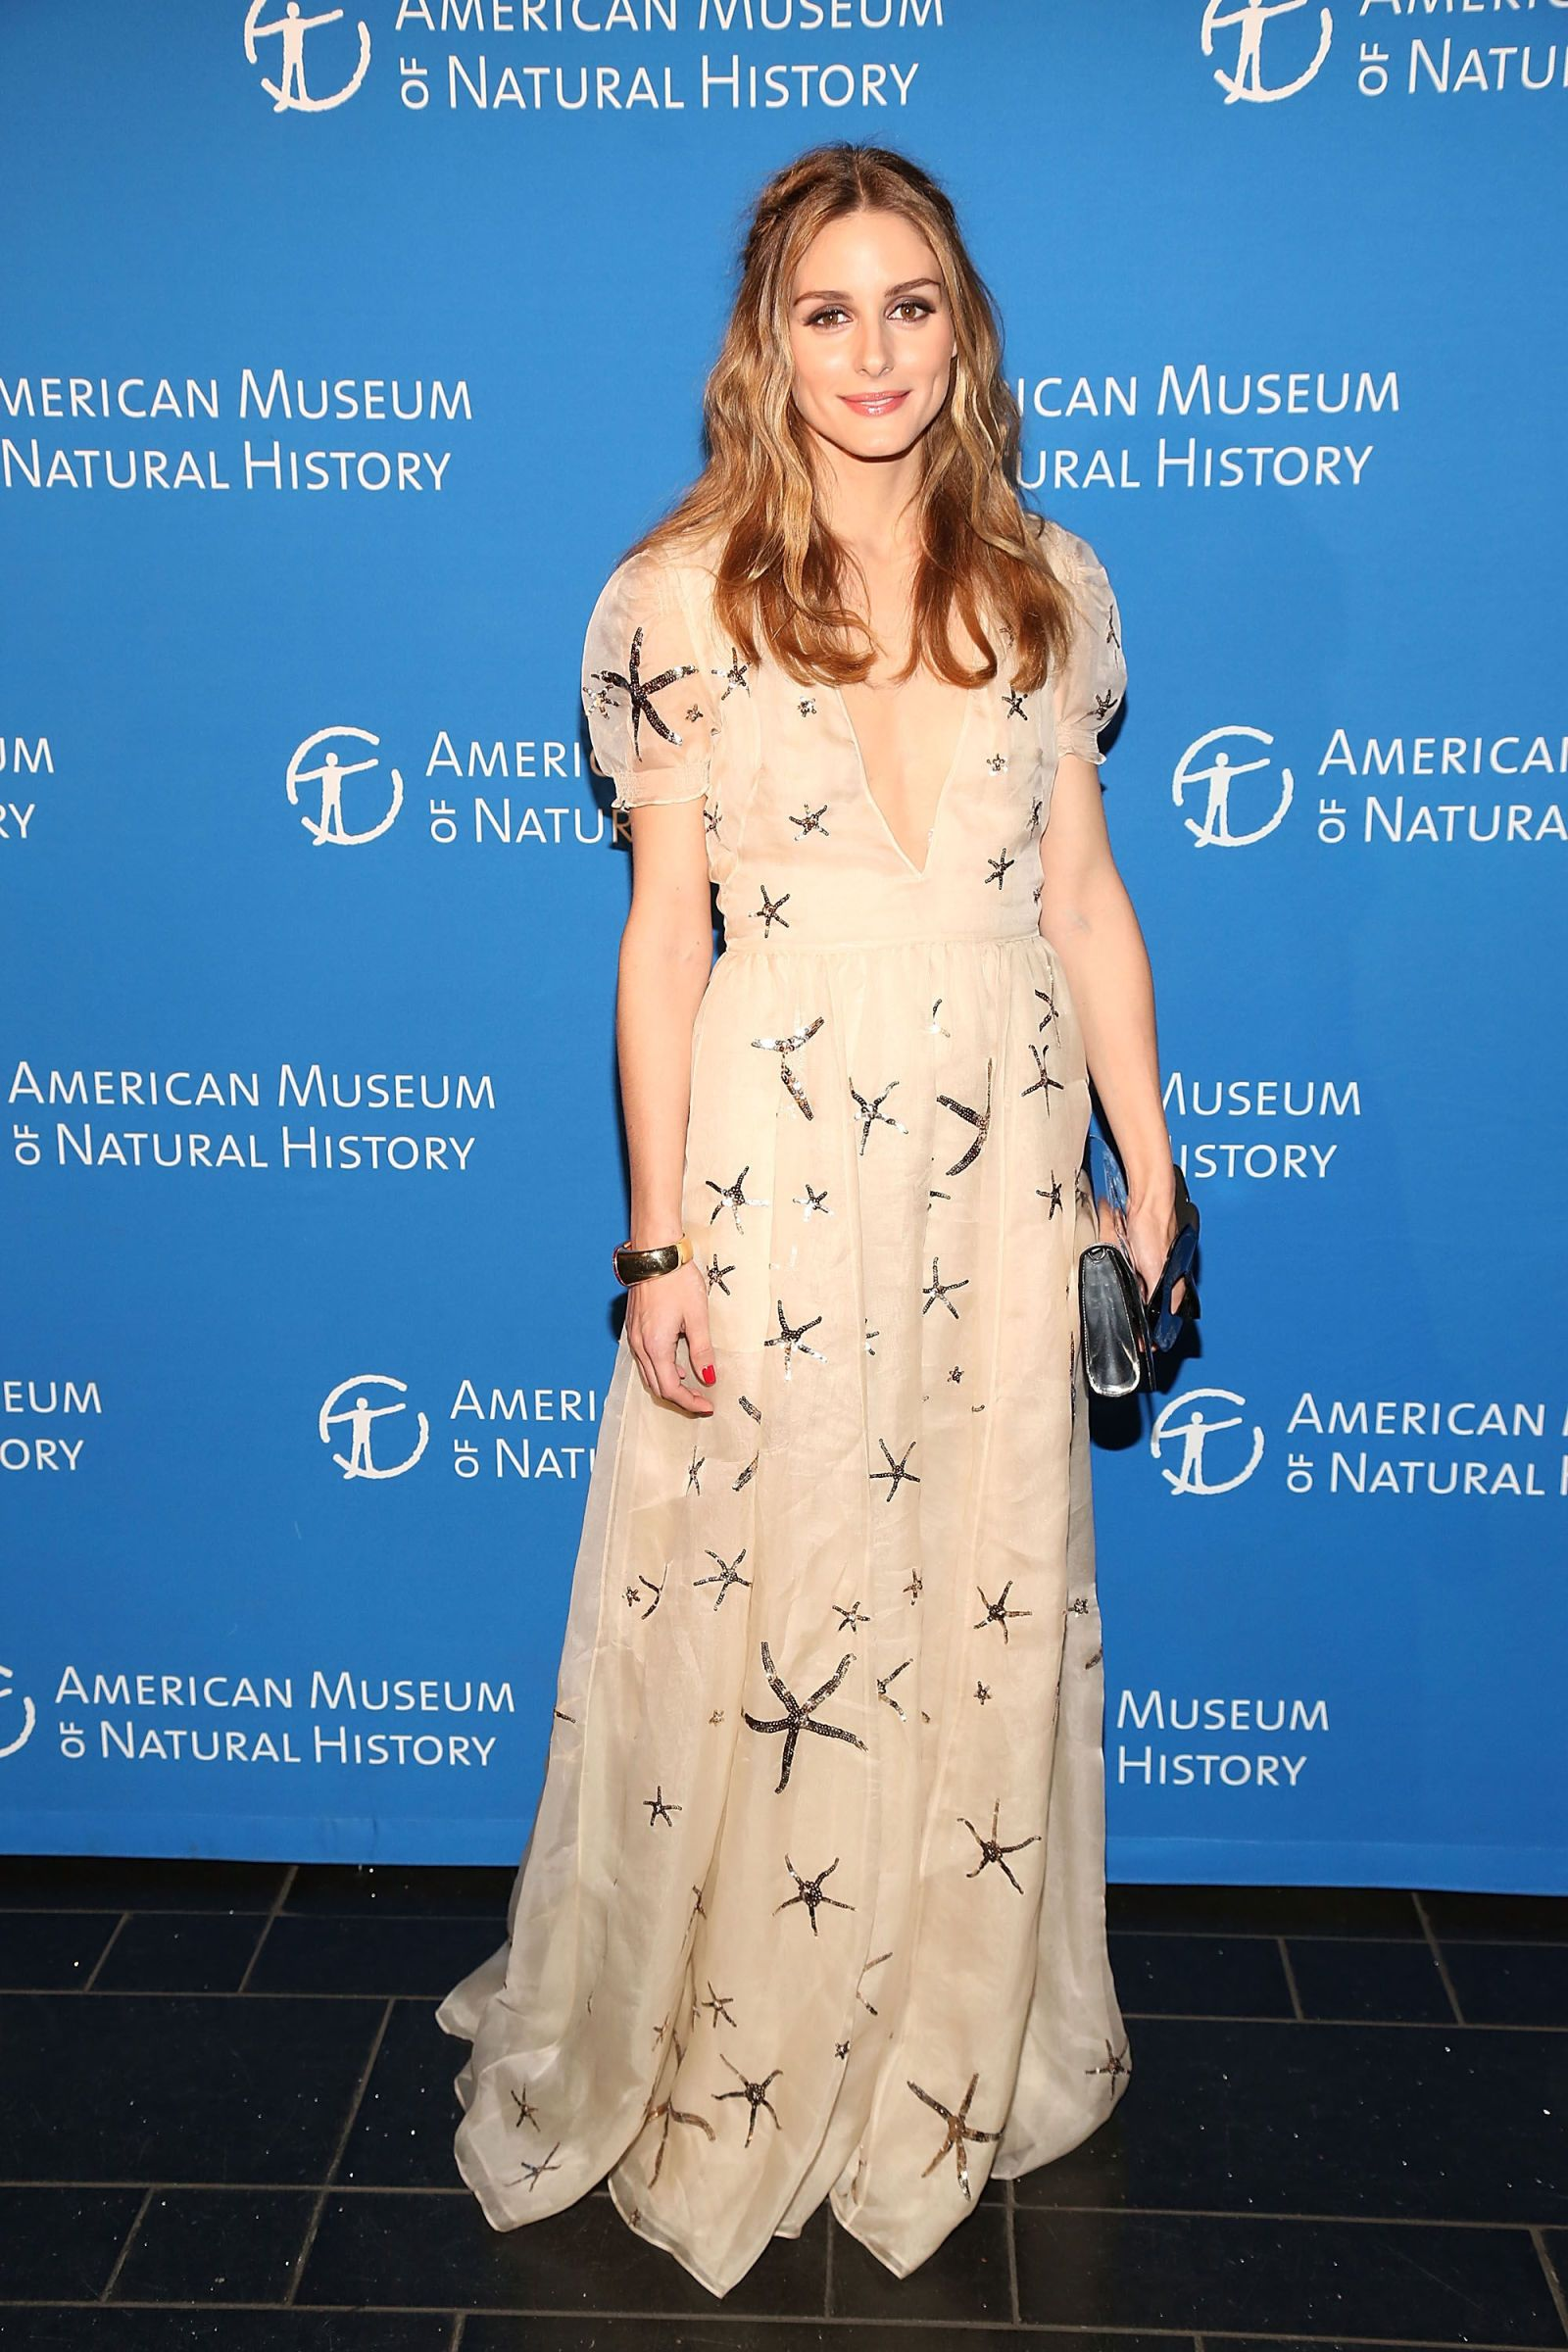 Olivia Palermo has worn a dress we'd like to get married in  - Cosmopolitan.co.uk